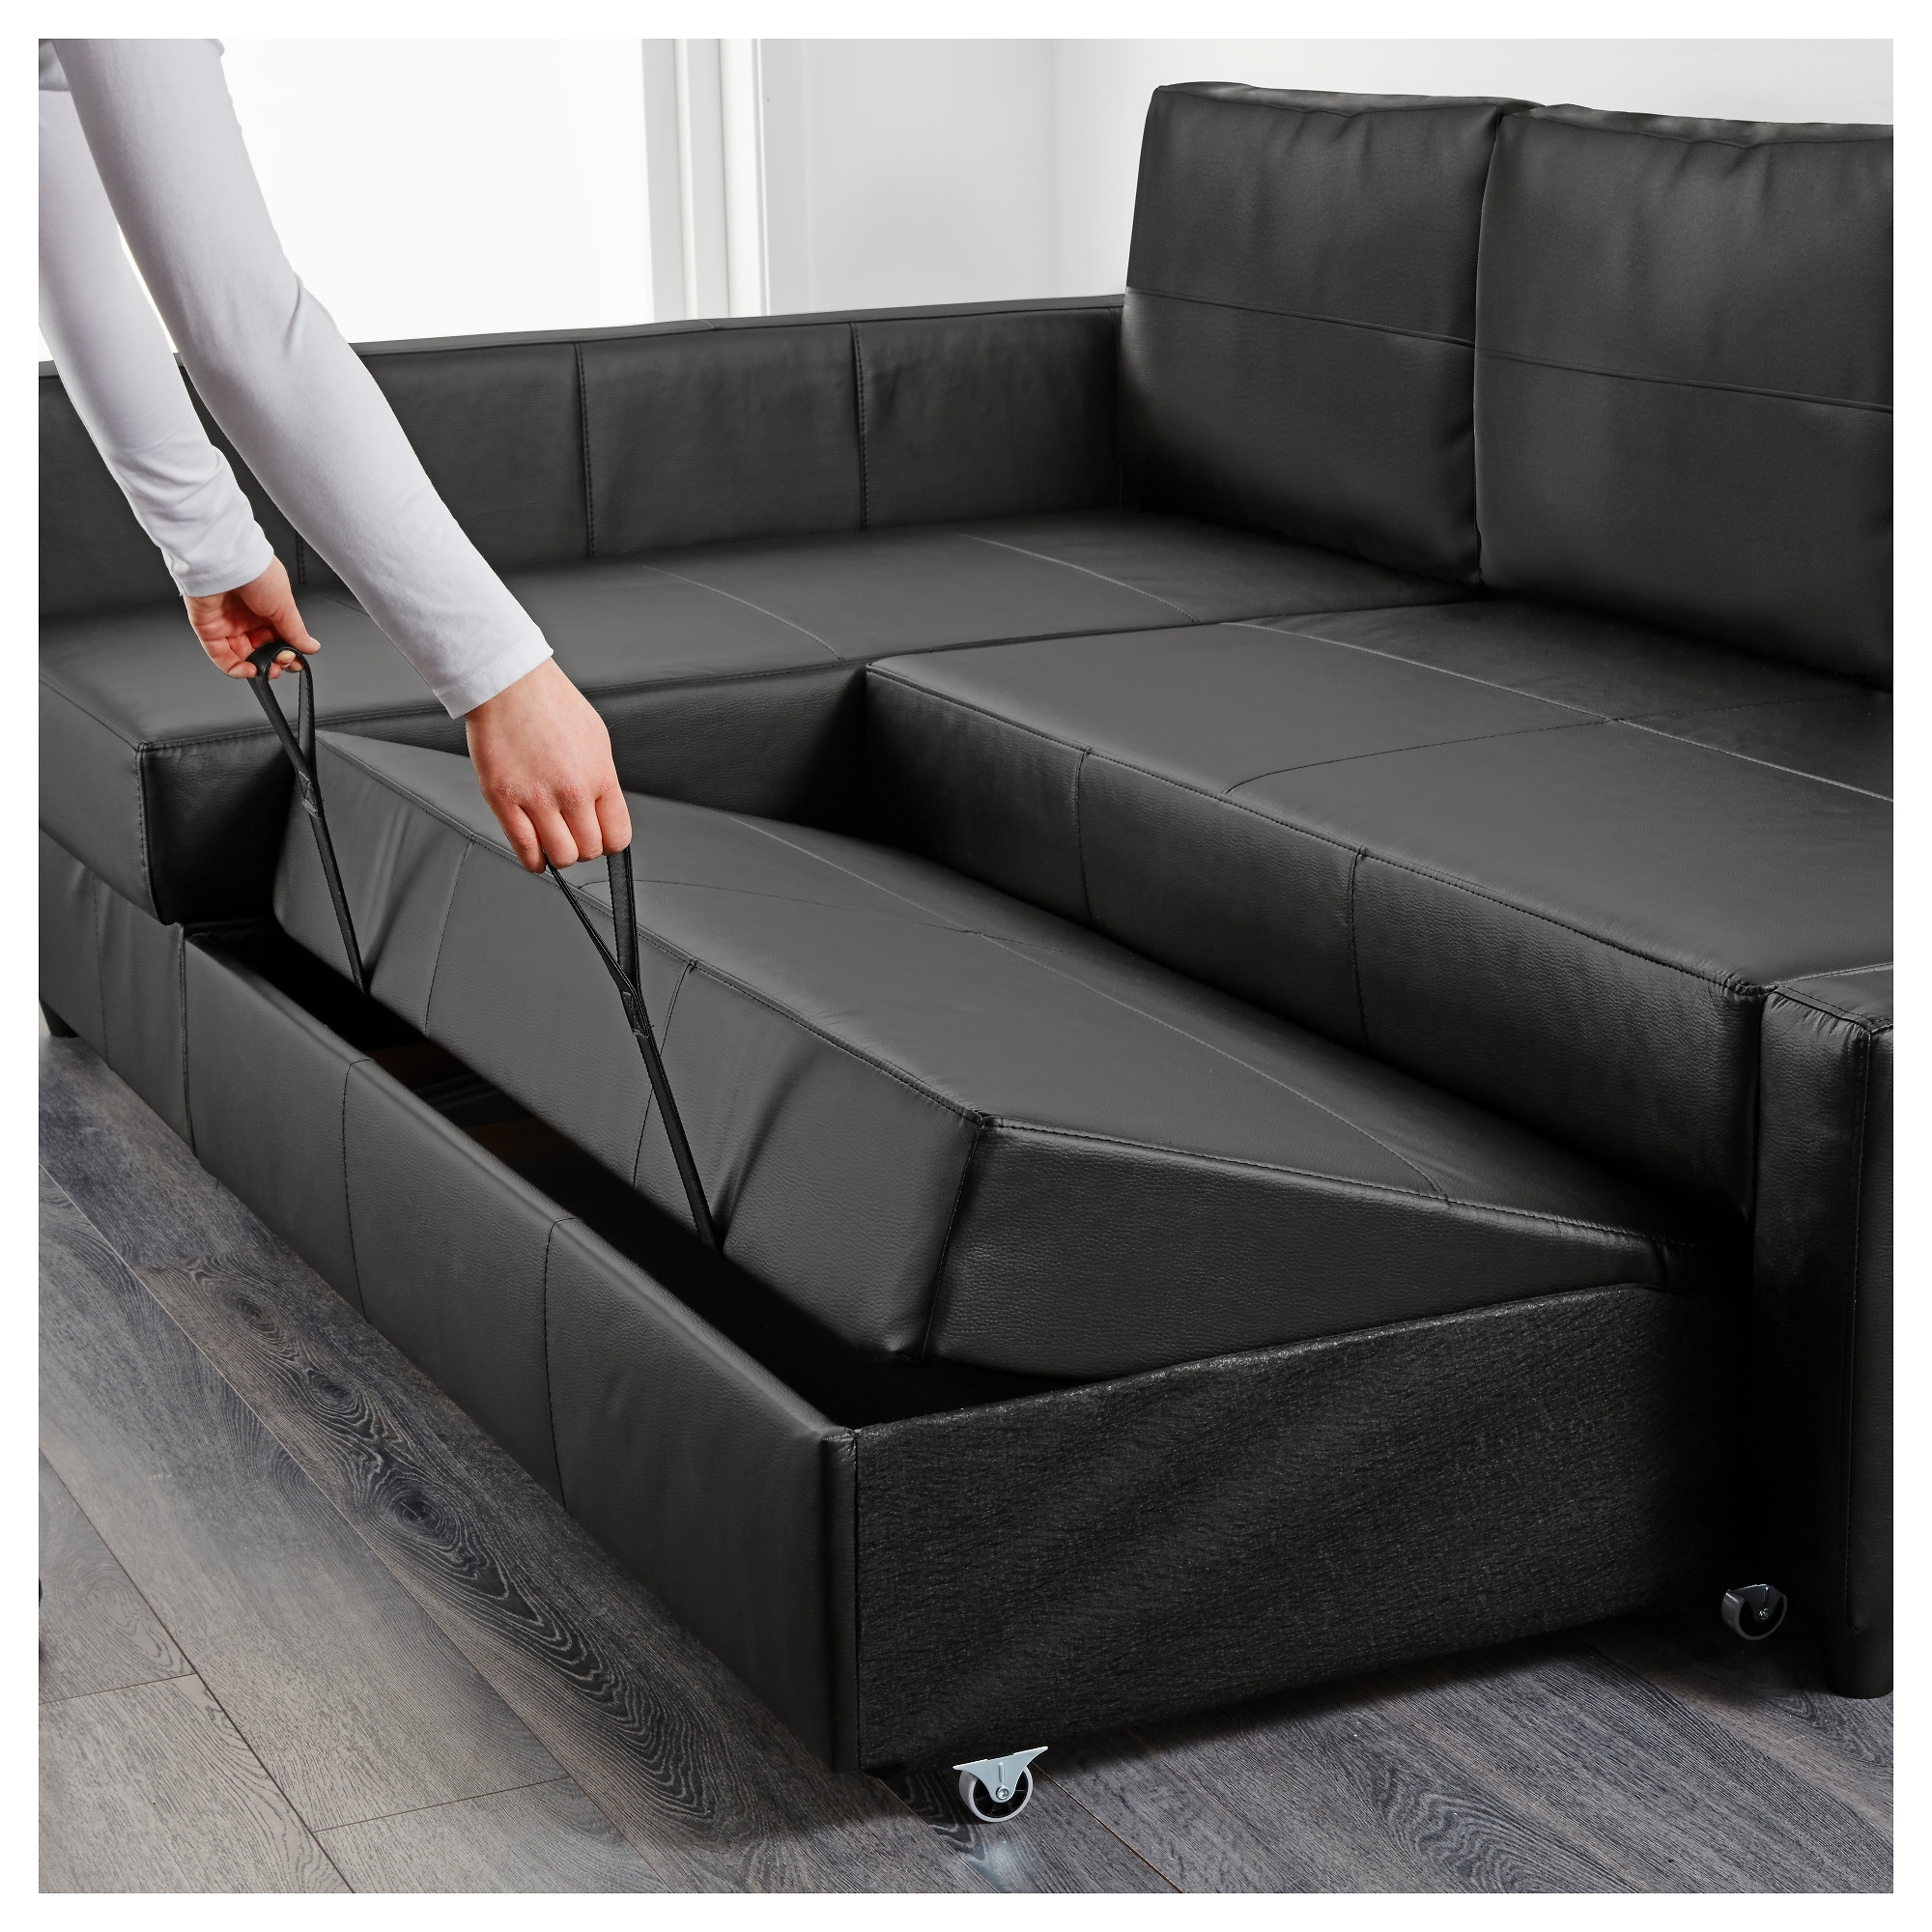 Featured Image of Leather Sofas With Storage